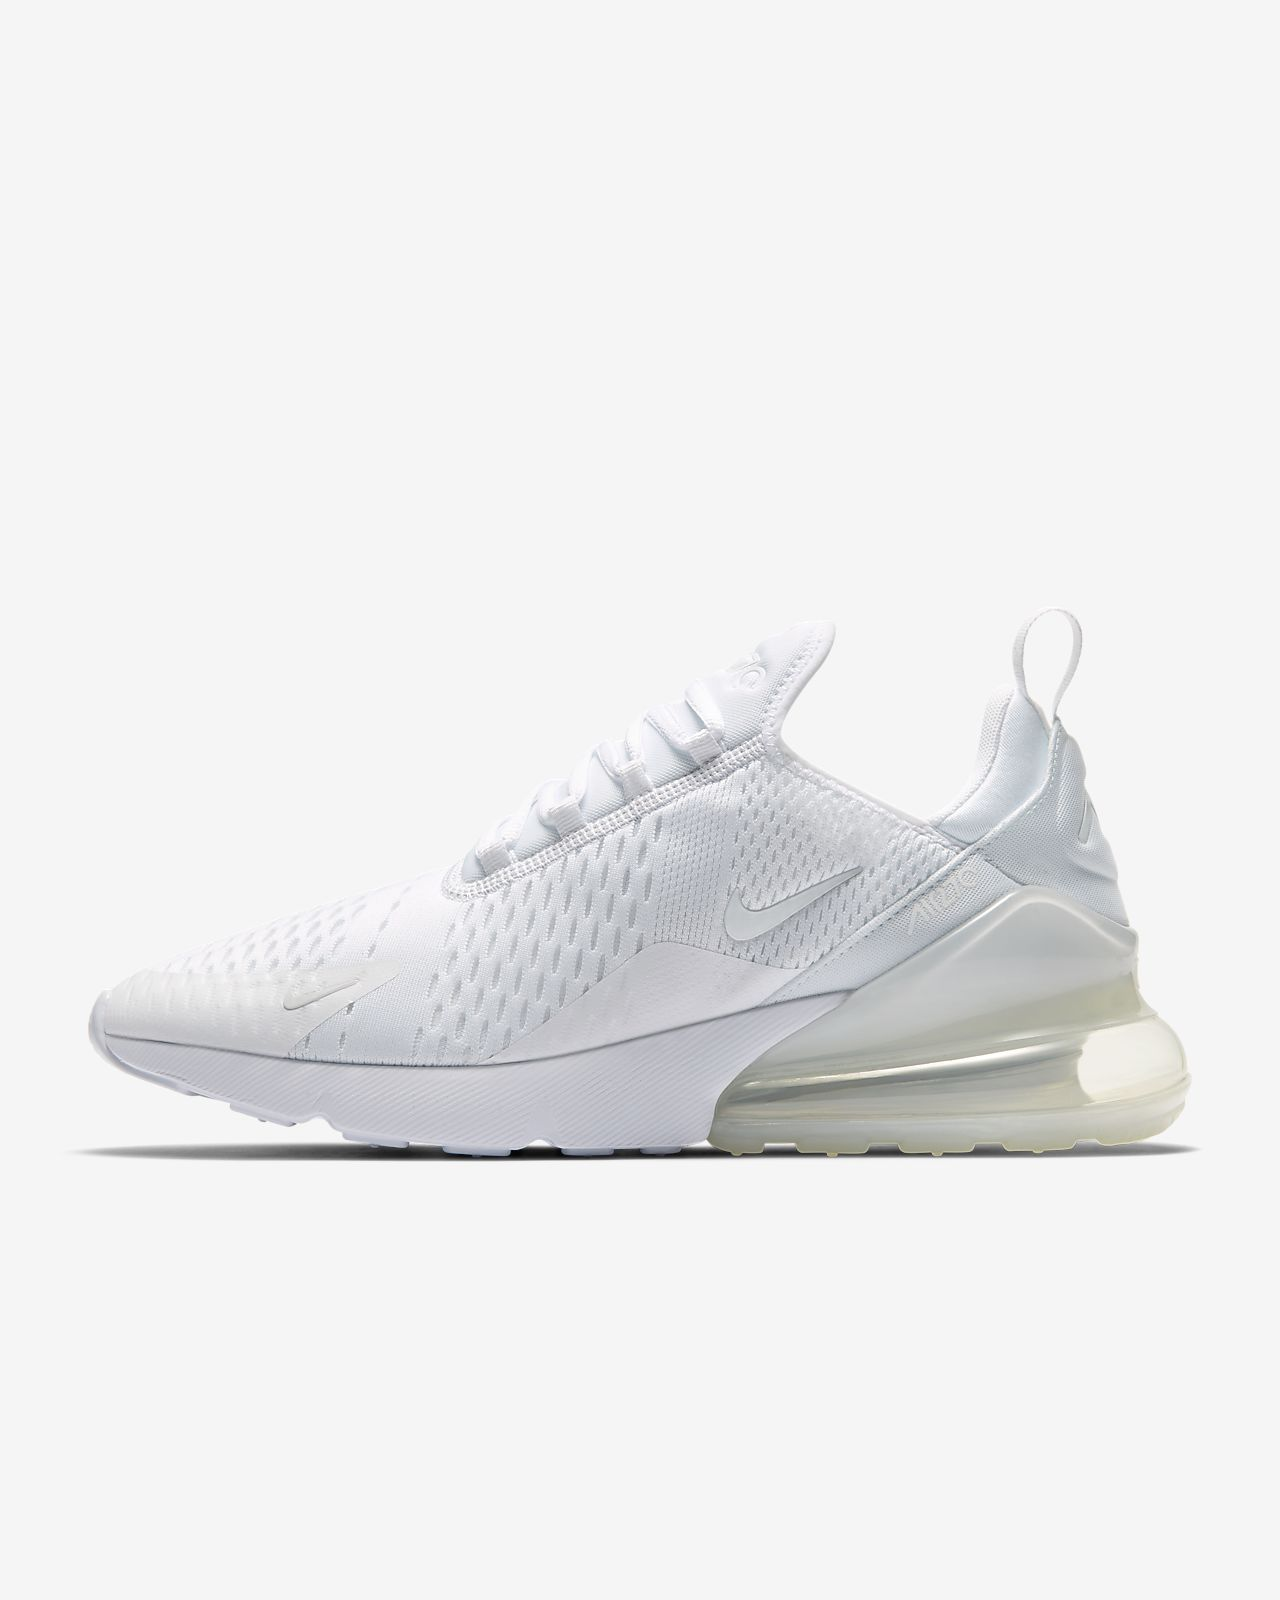 7702742888b Nike Air Max 270 Men s Shoe. Nike.com